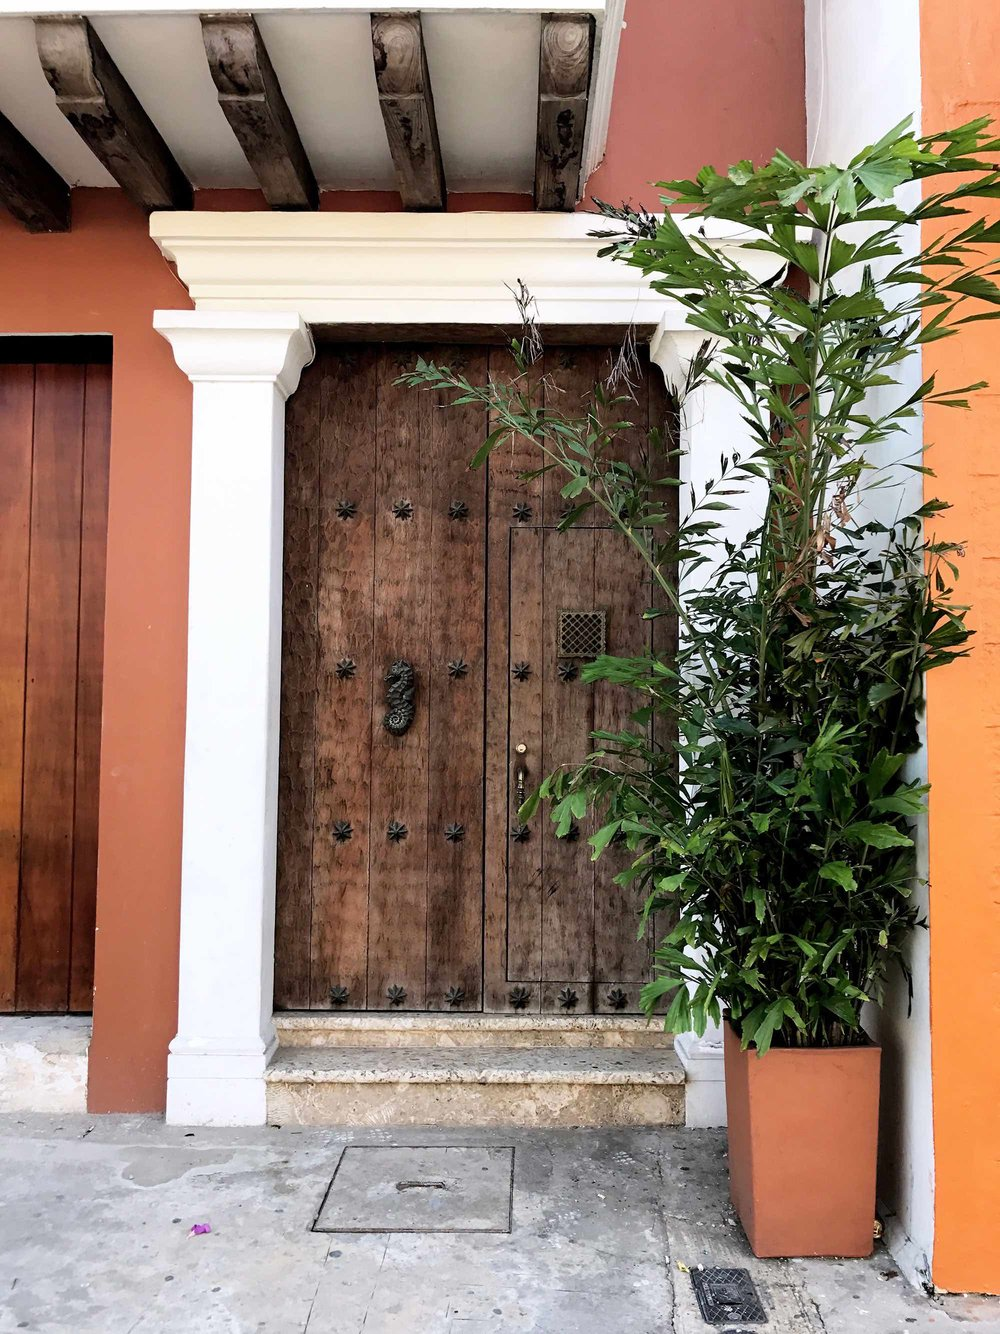 Doors and Door Knockers of Cartagena, Colombia